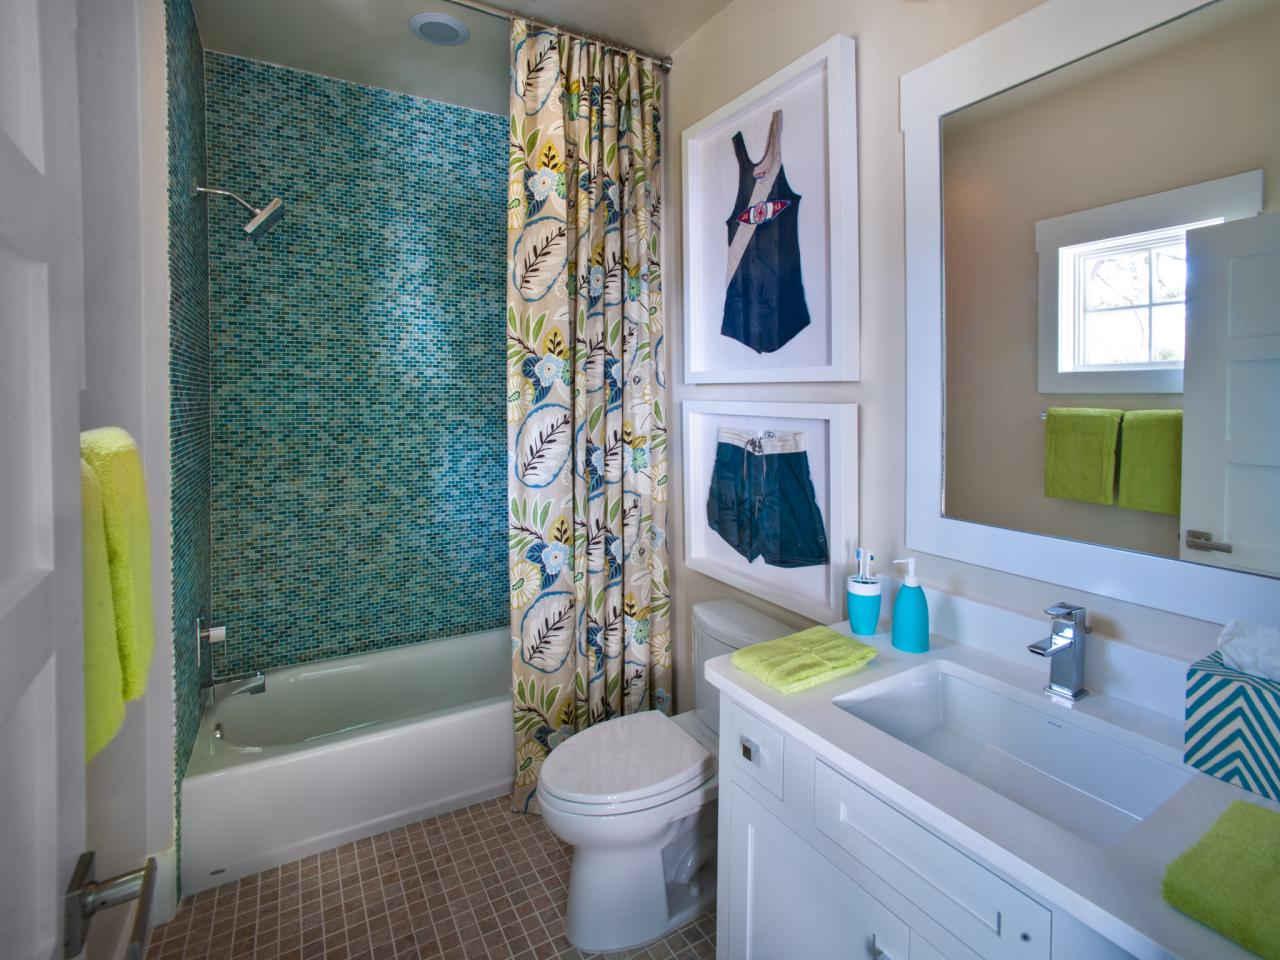 Bathroom Design Ideas And Tips: Boy's Bathroom Decorating: Pictures, Ideas & Tips From